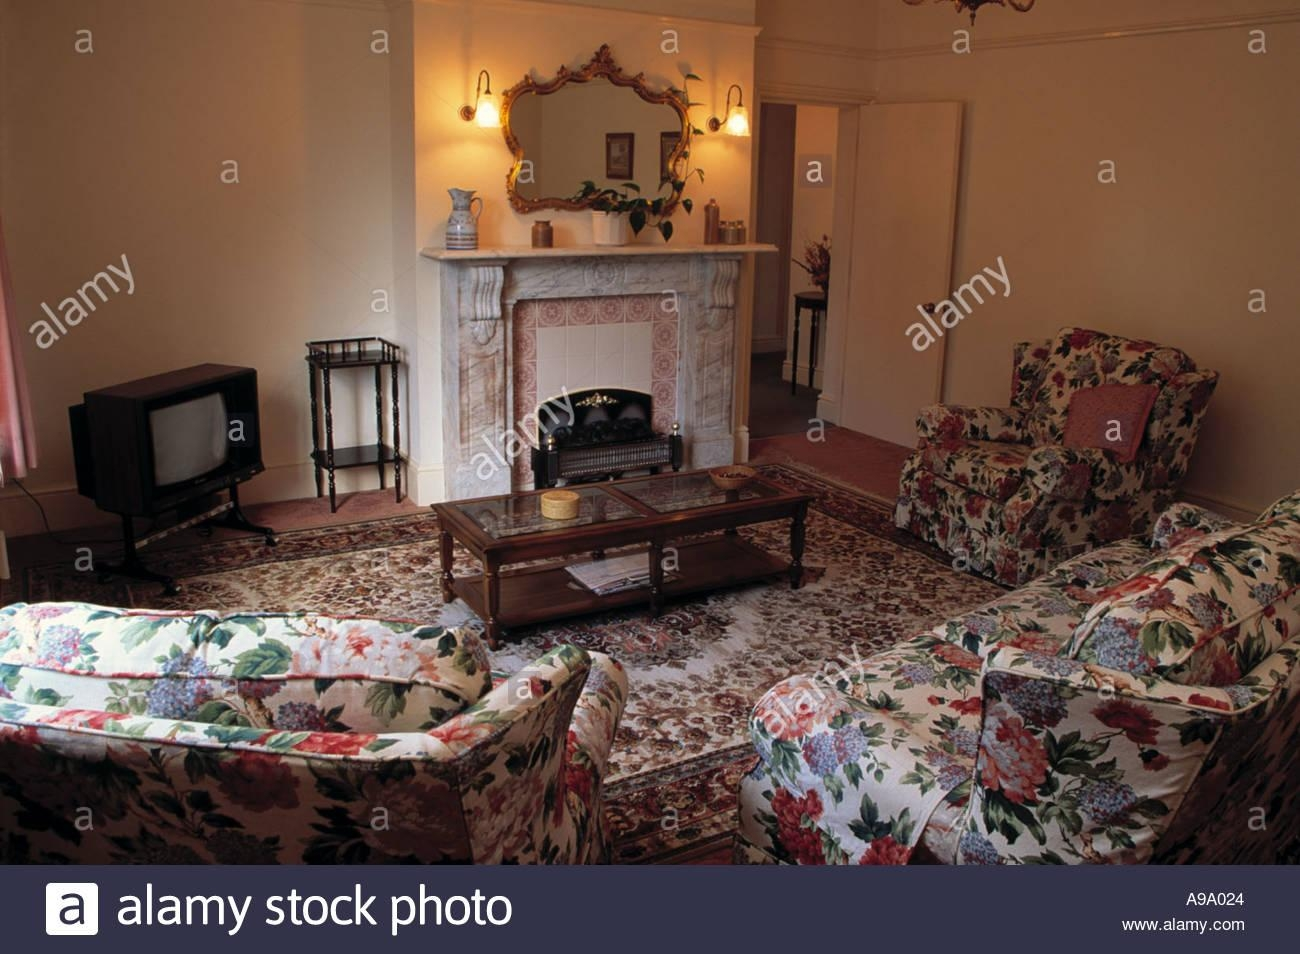 Sofas Armchairs In Living Room Stock Photos & Sofas Armchairs In Within Chintz Sofas And Chairs (Image 18 of 20)